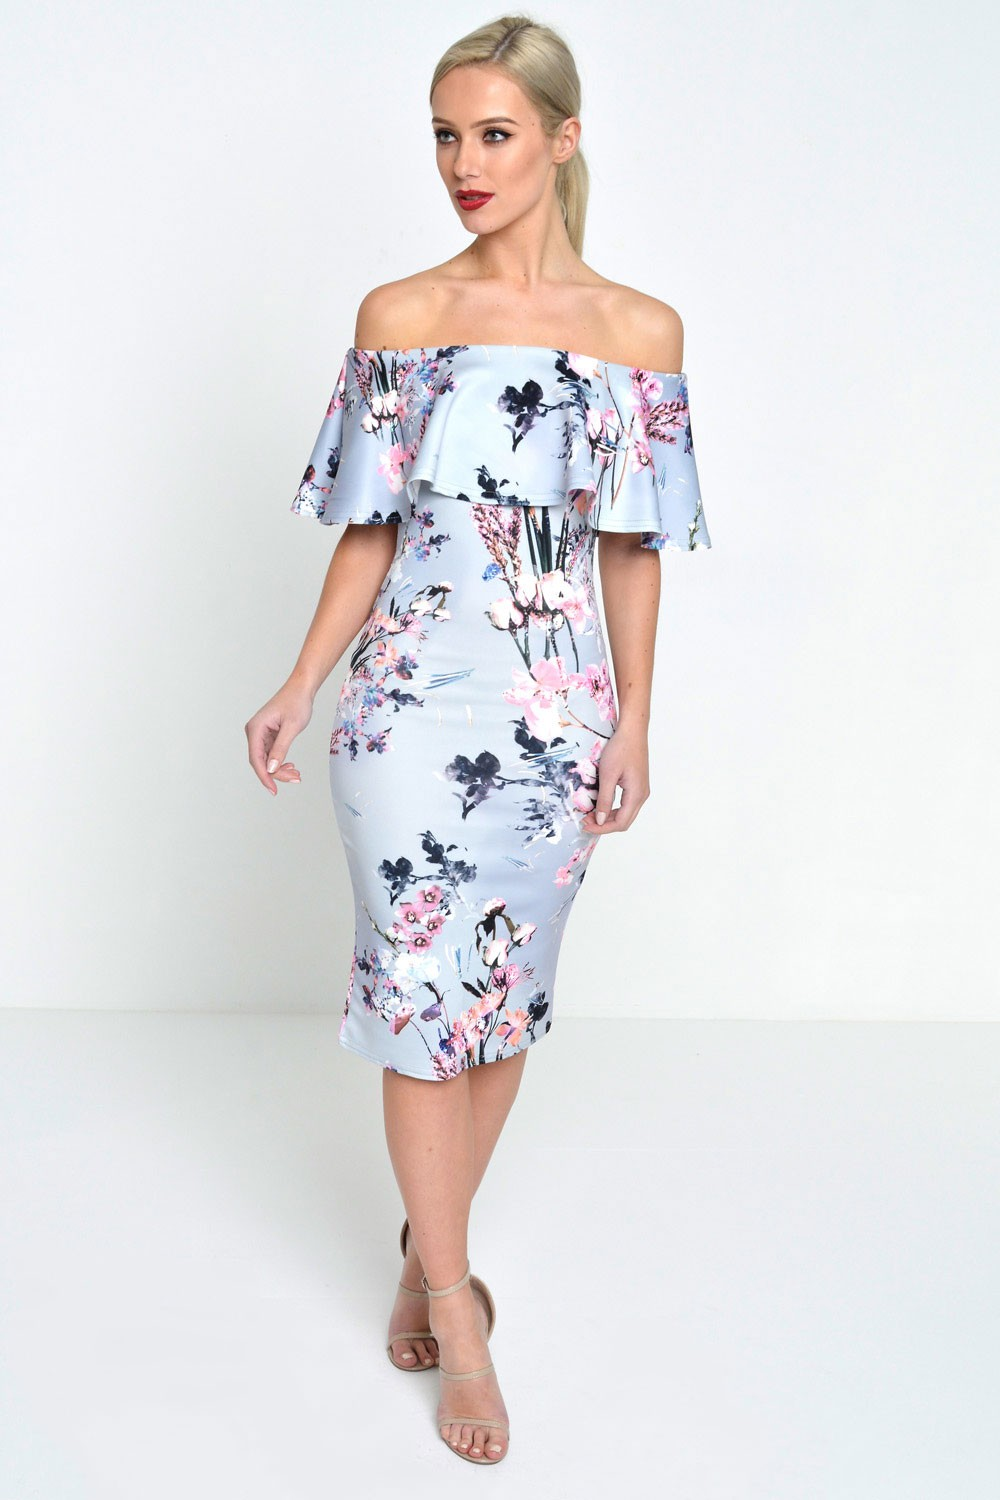 81c52905f254 ... off the shoulder bodycon dress · zoom; e5537b978 grey floral 2 ...